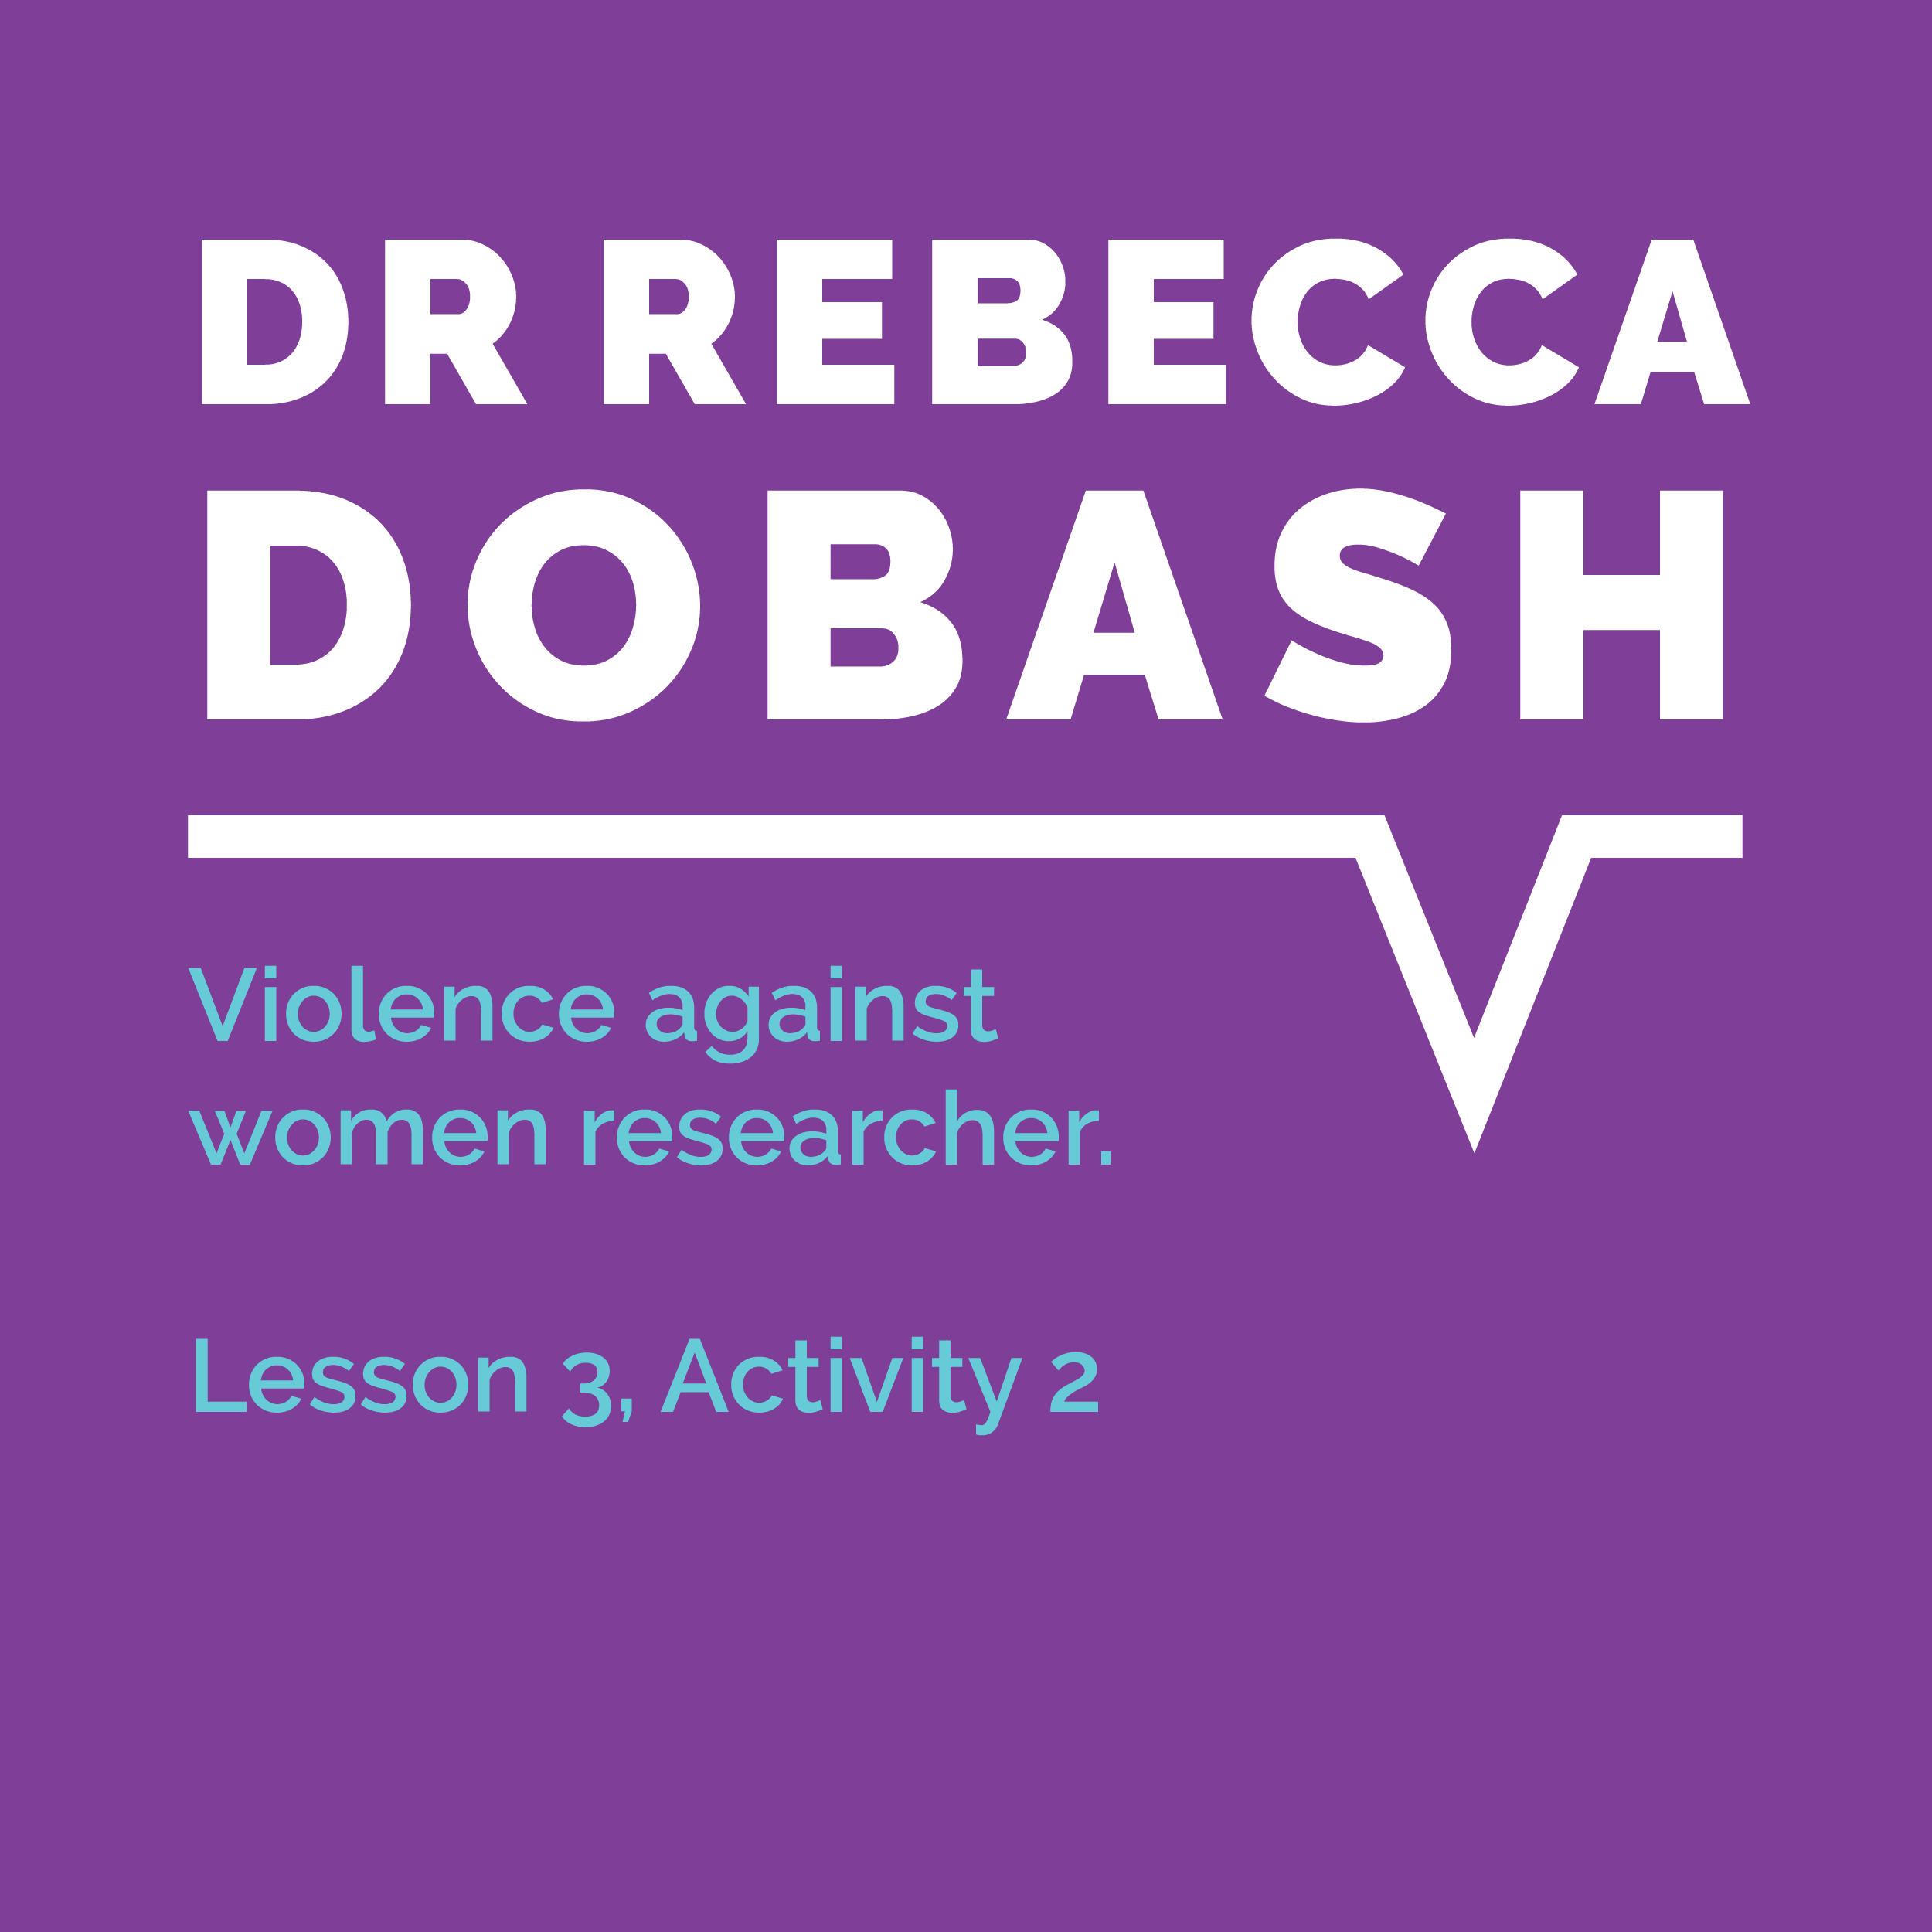 Speaking Out Learning Resource, Lesson 3, Activity 2: Dr Rebecca Dobash, violence against women researcher